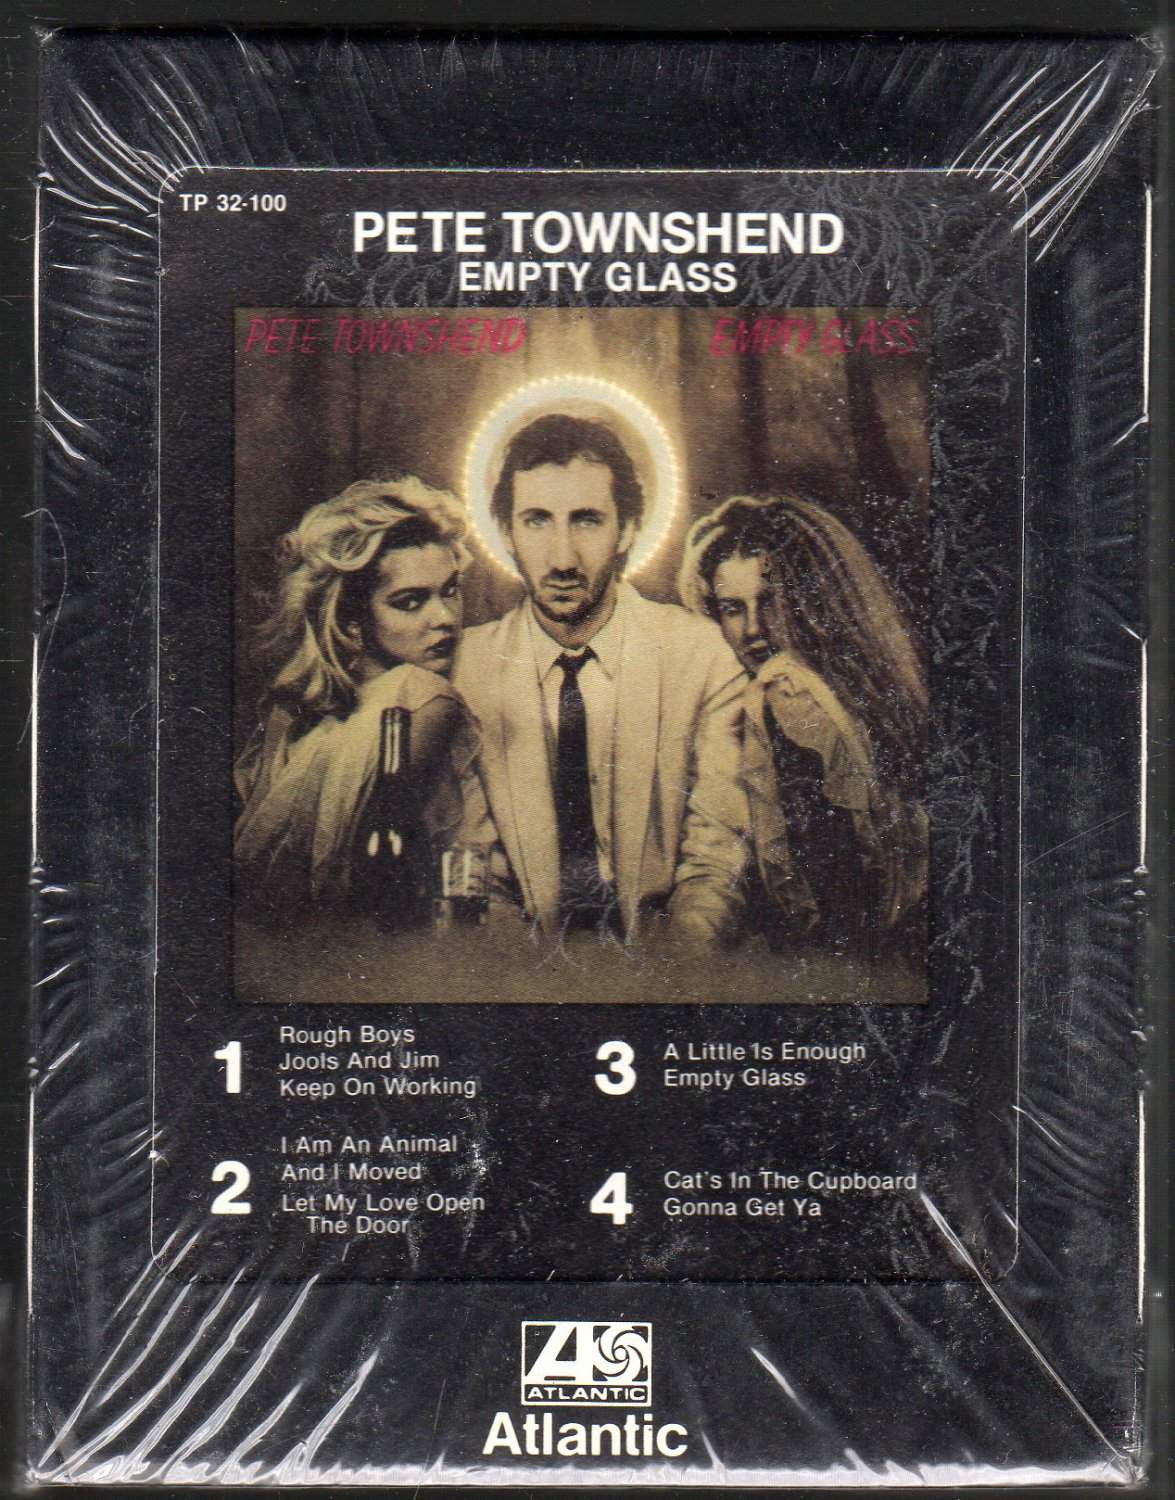 townshend singles & personals 2000 - present pete townshend is dating musician rachel fuller they live together in the wick, richmond, england it has to be mentioned that townshend.